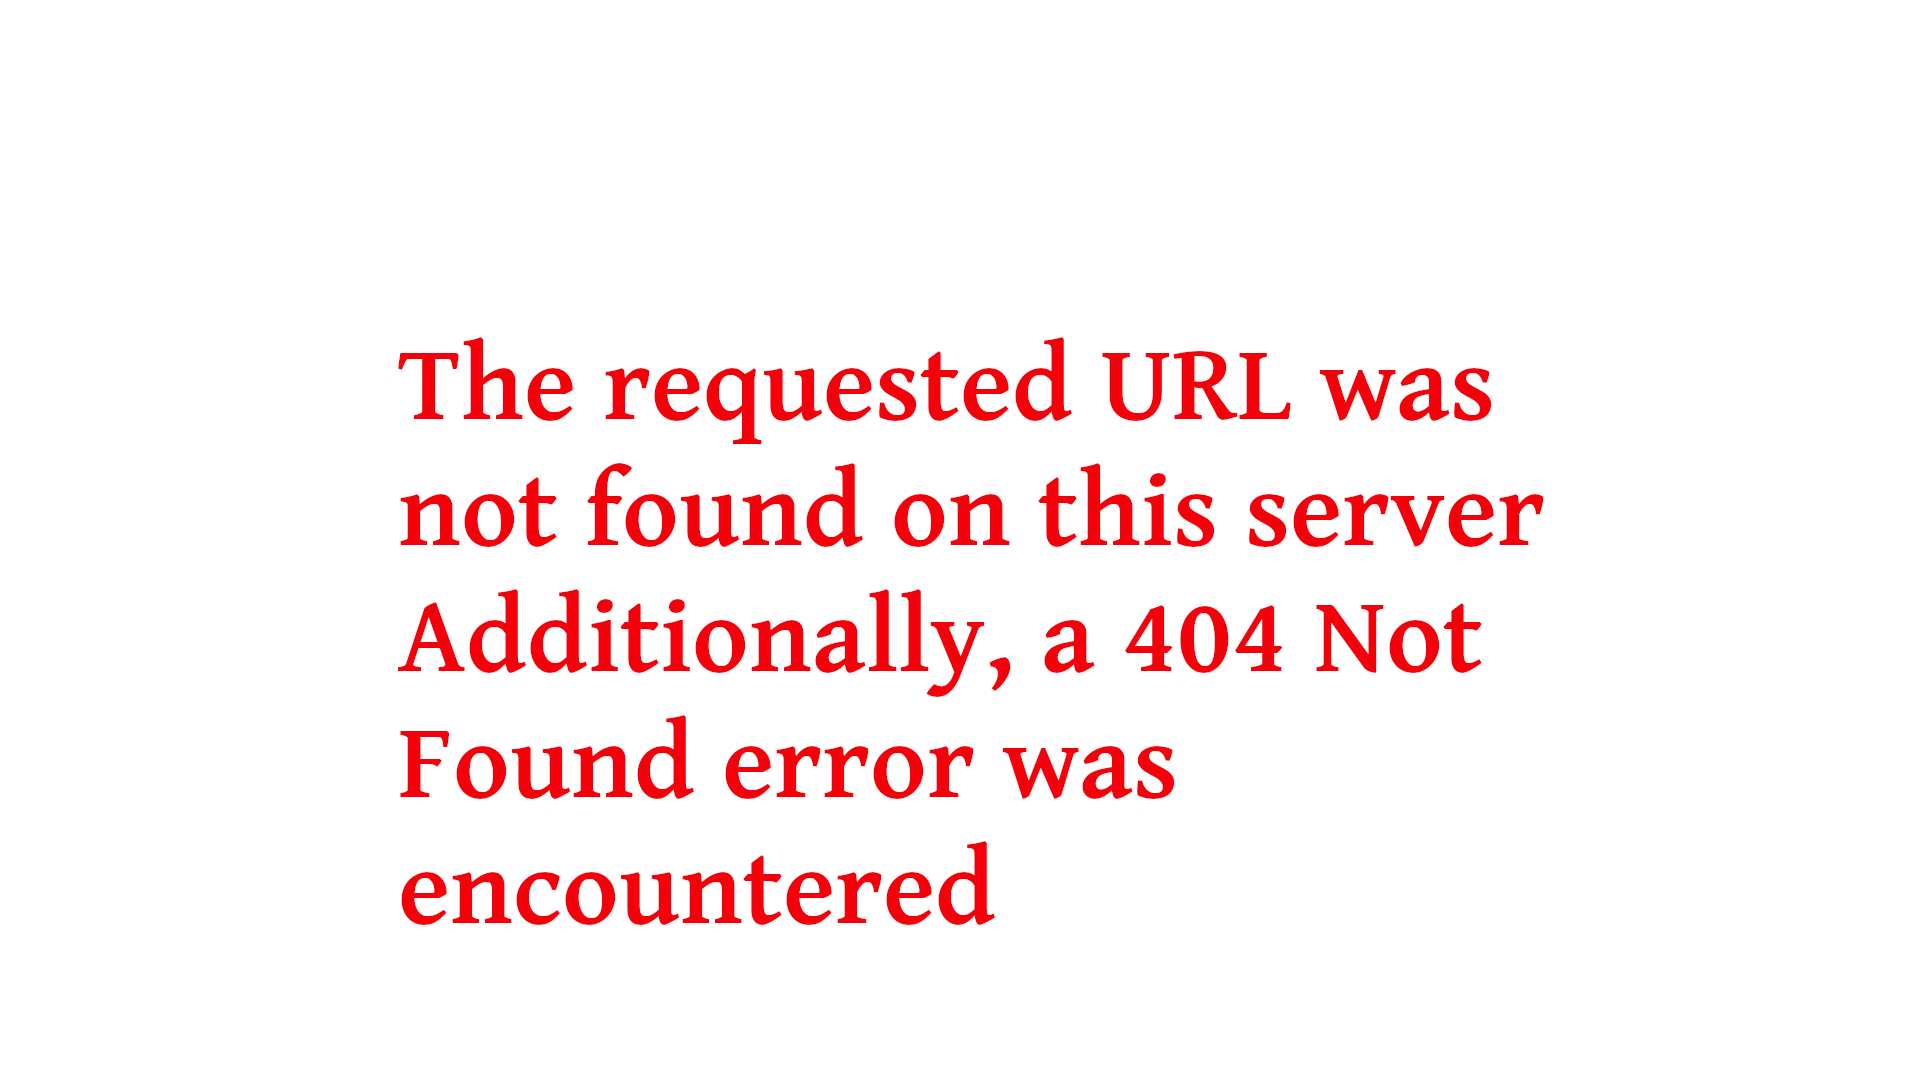 The requested URL was not found on this server Additionally, a 404 Not Found error was encountered